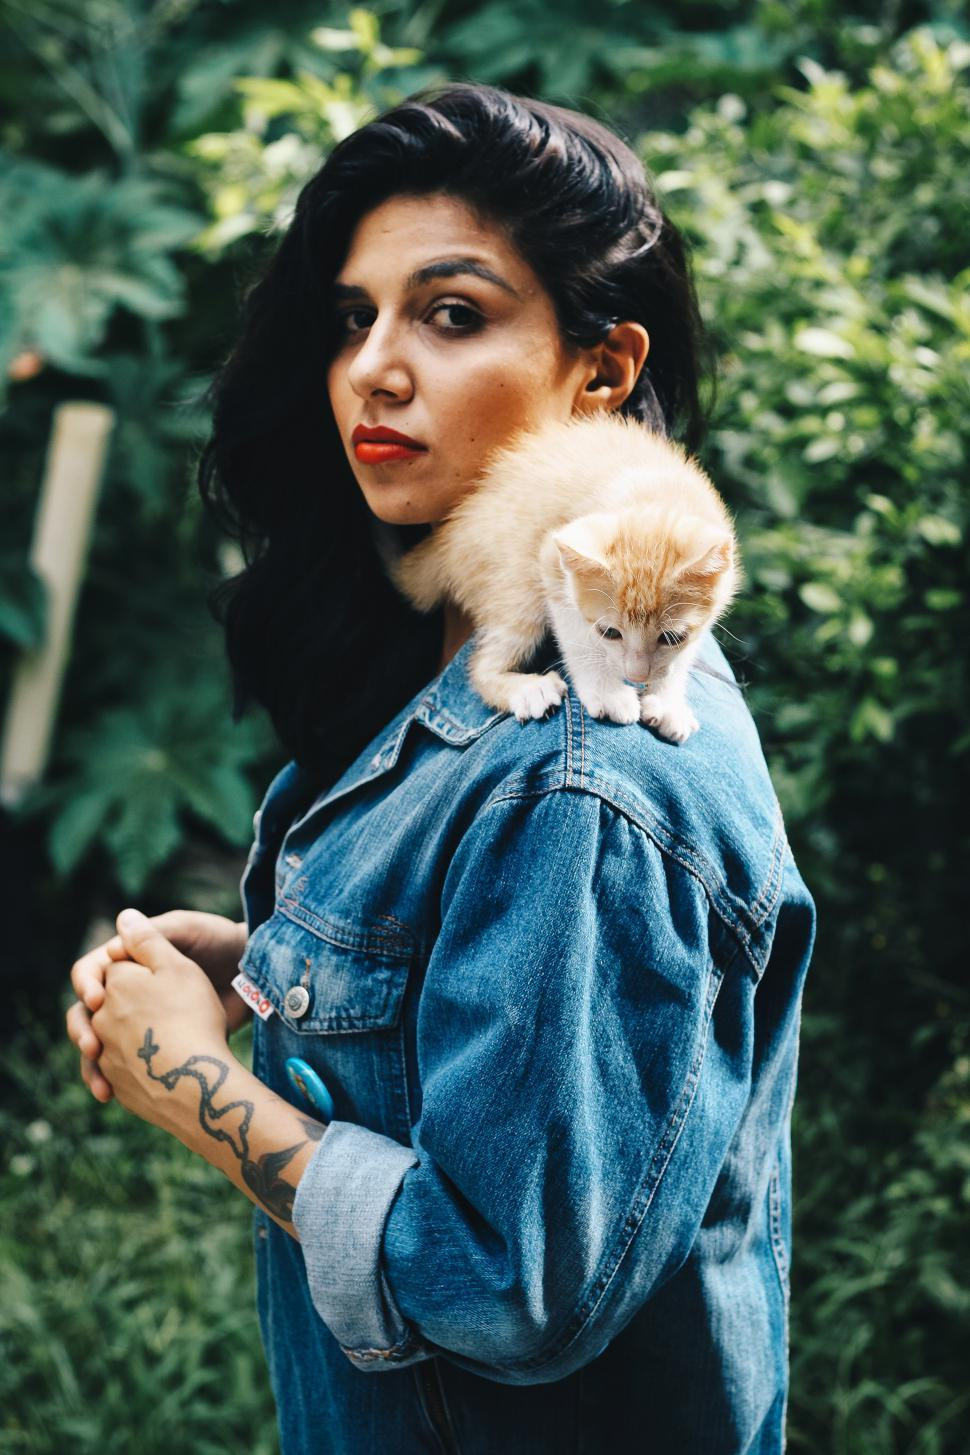 Download Free Stock Photo of Woman with cat on shoulder